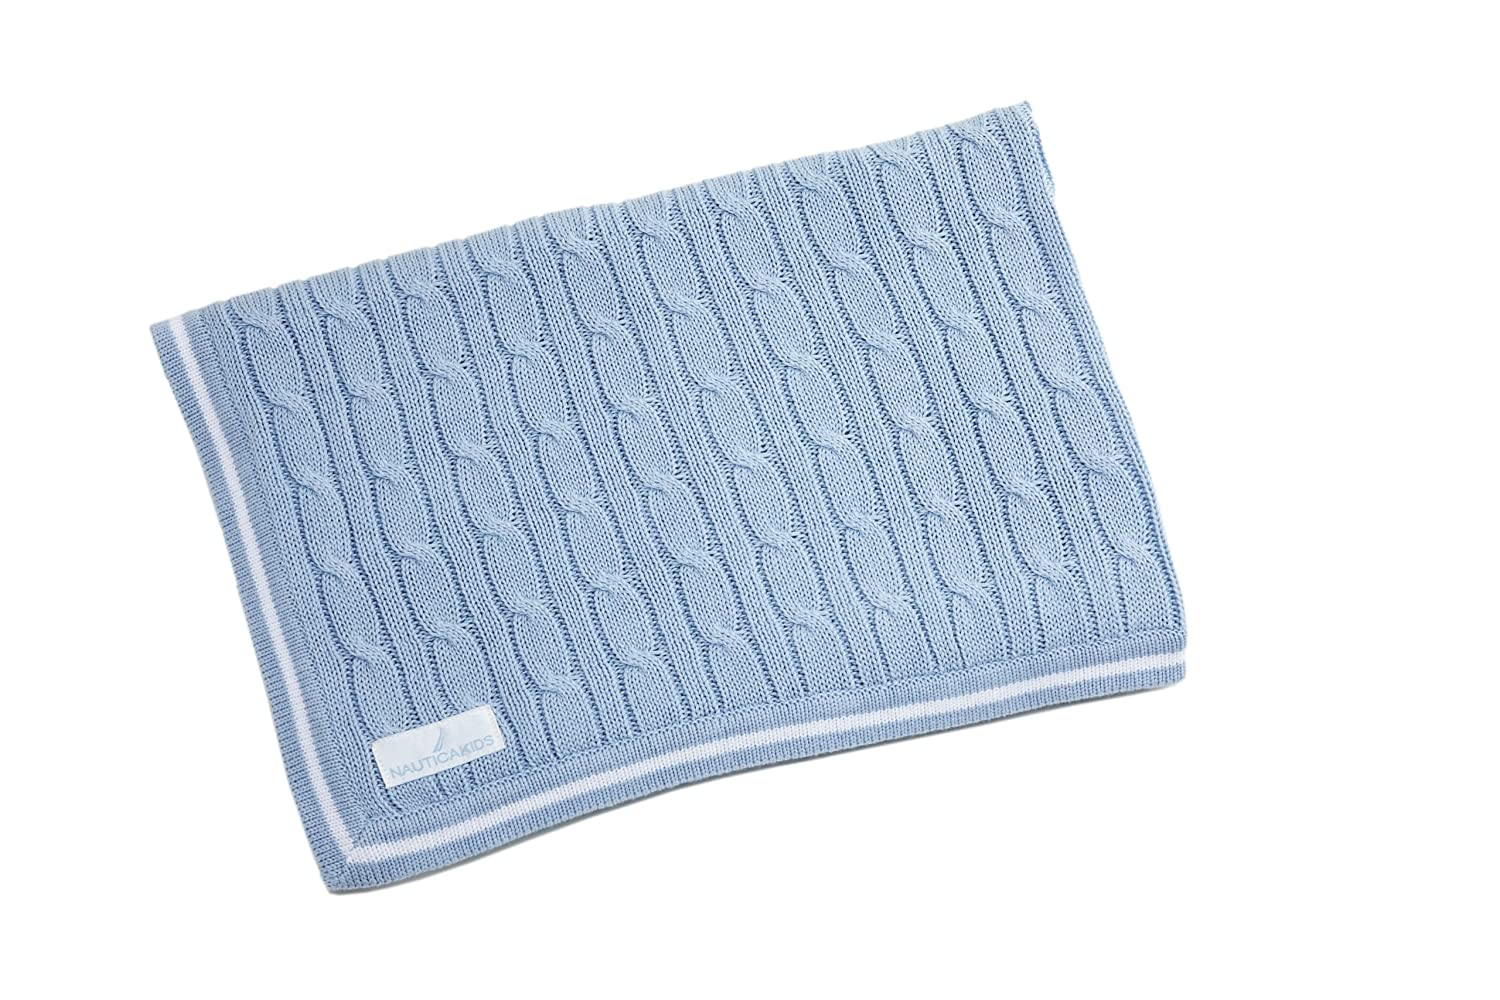 Nautica baby bedding william - Amazon Com Nautica Kids William Light Blue Cable Knit Blanket Nursery Blankets Baby